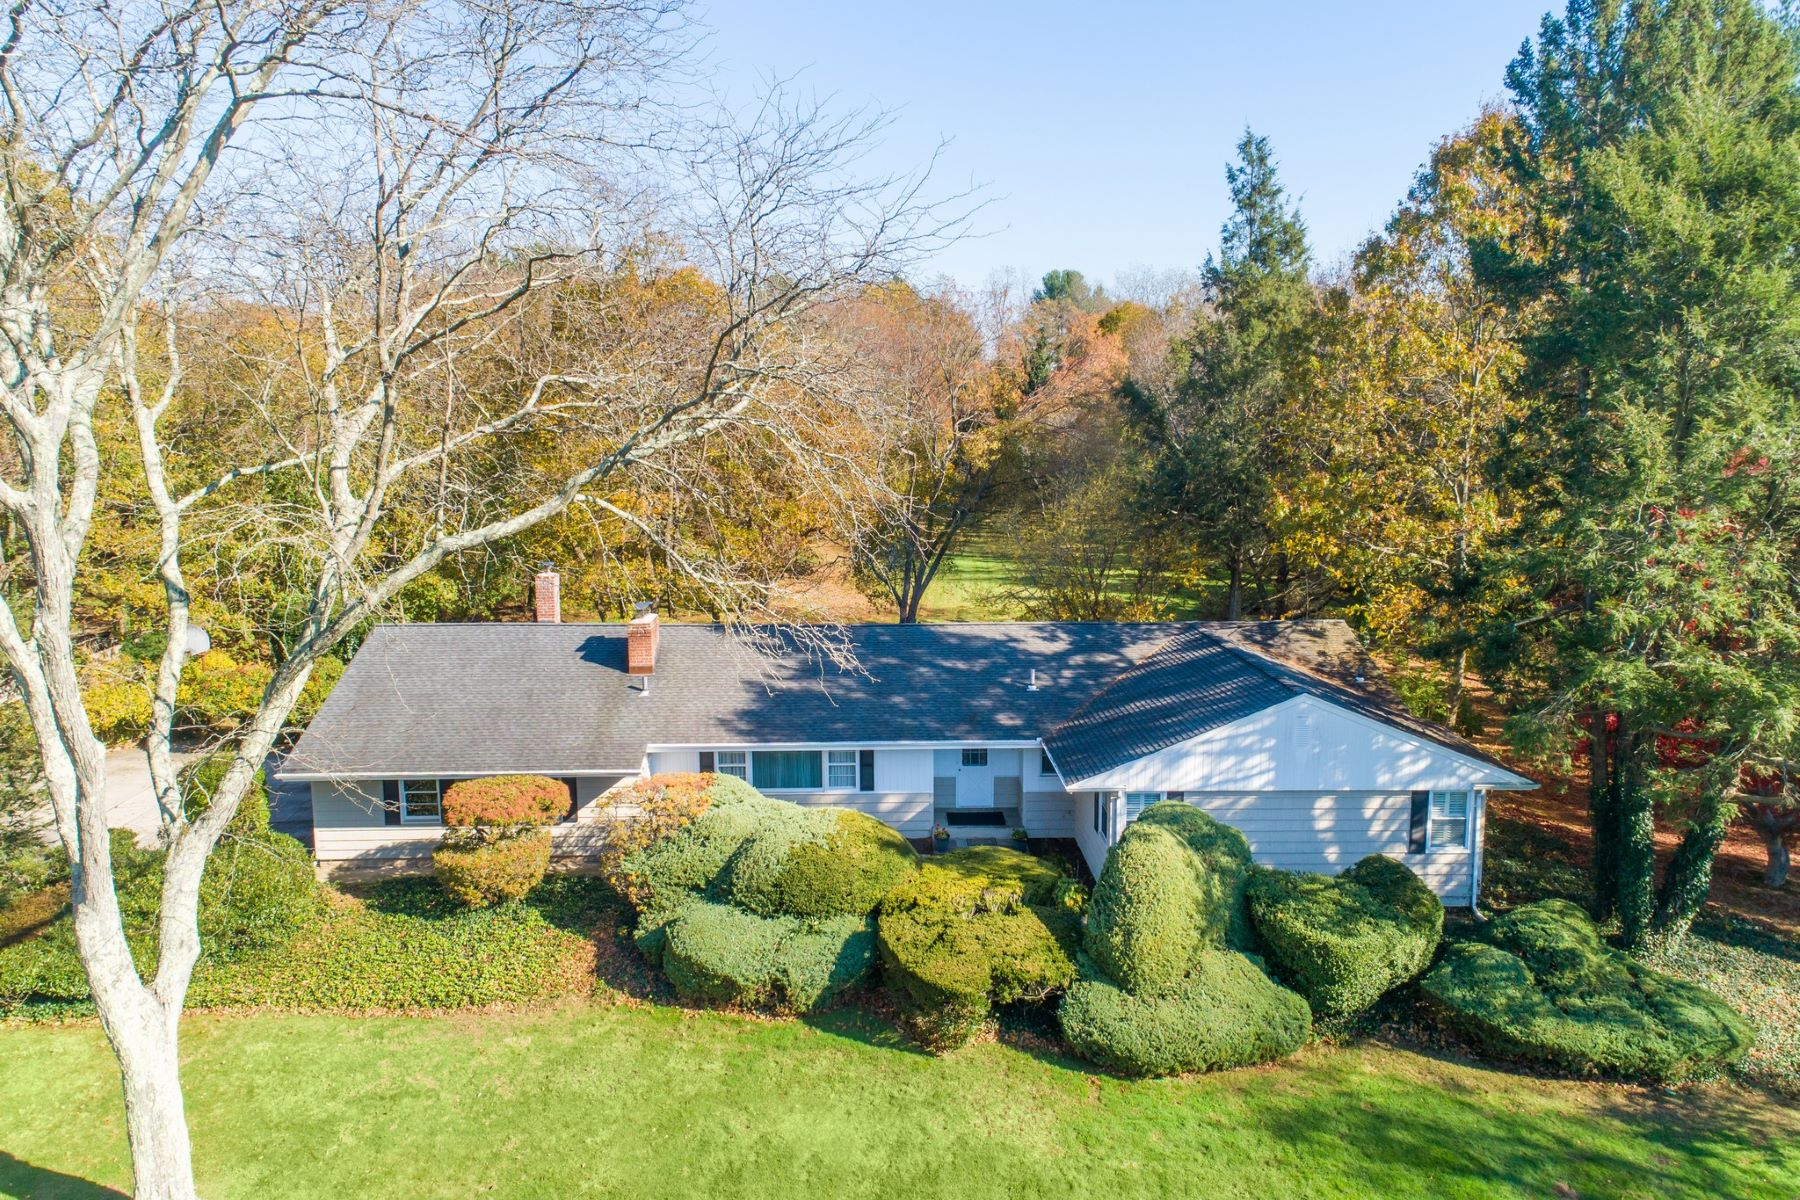 Single Family Homes for Sale at Cold Spring Hrbr 12 North Run Cold Spring Harbor, New York 11724 United States